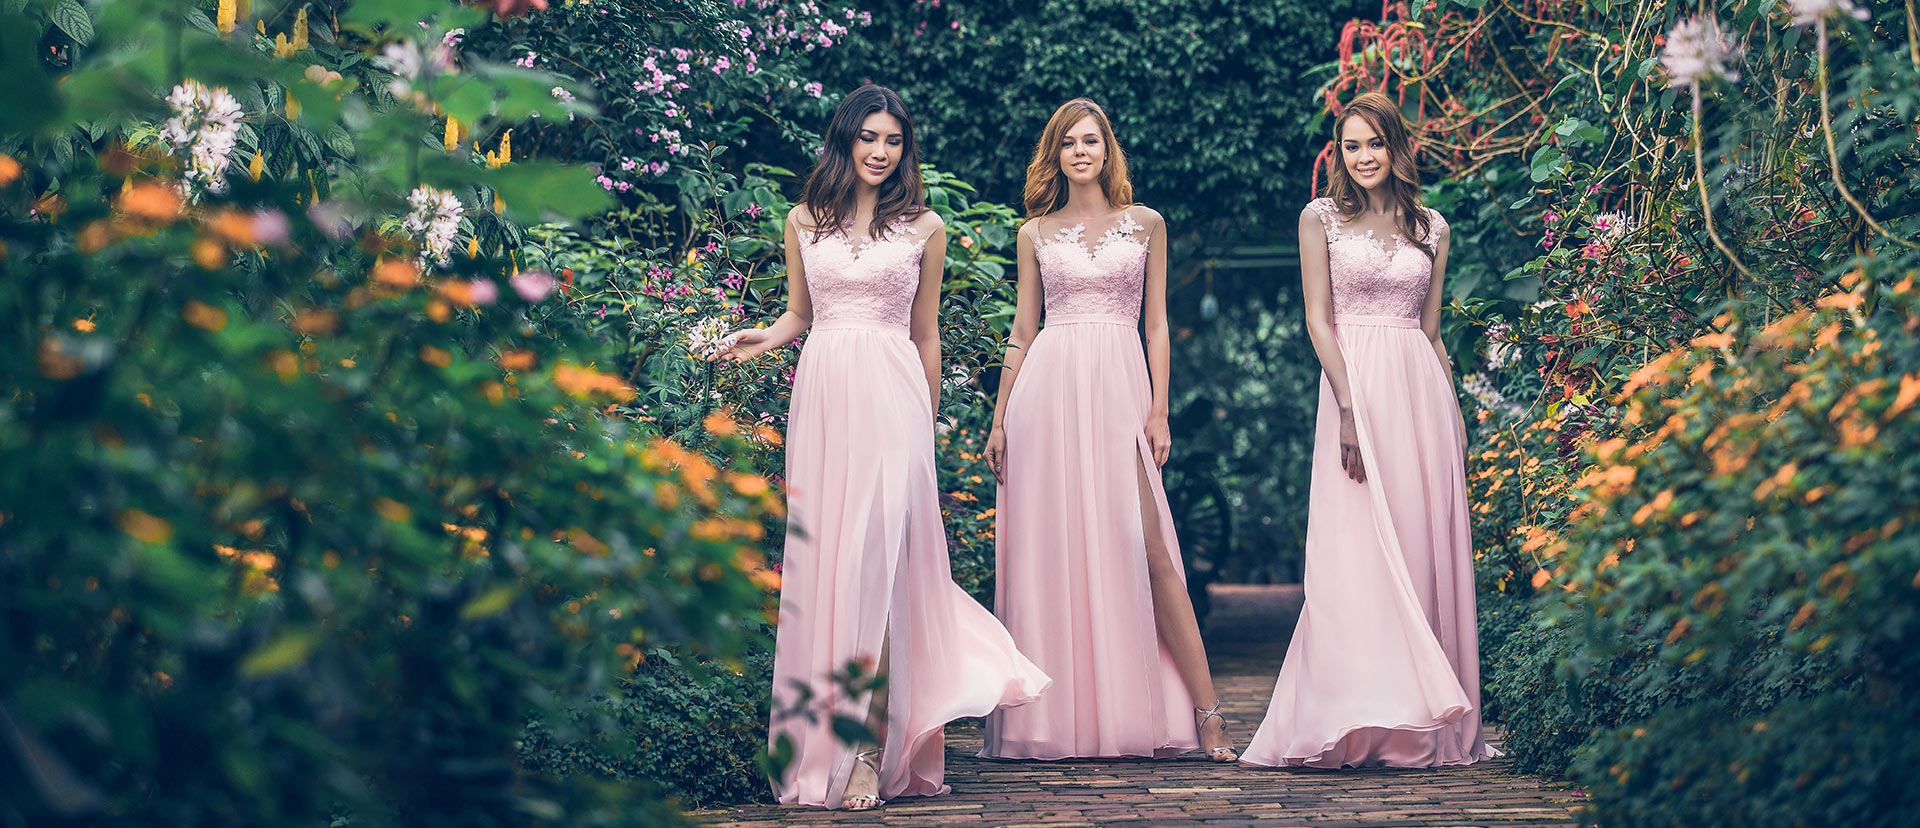 Cocomelody 2019 bridesmaid dresses be55d07c0df4